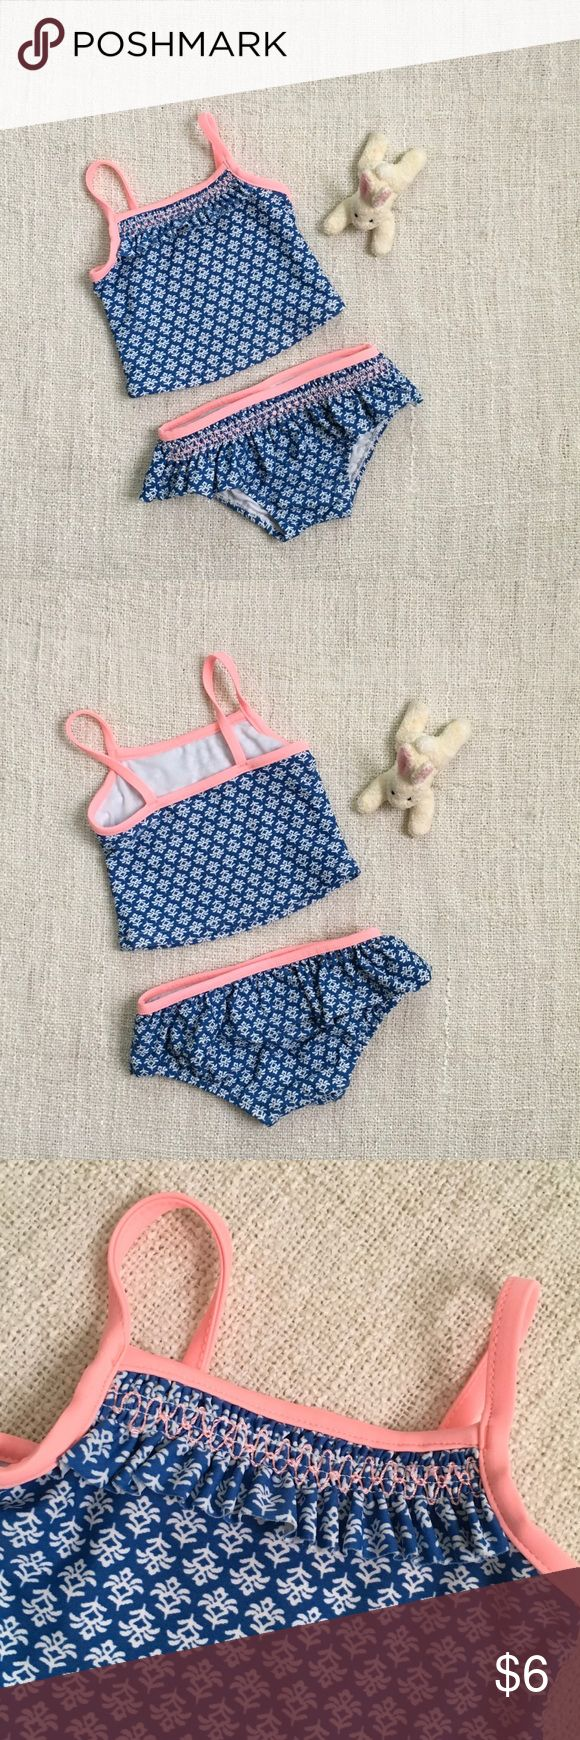 EUC: Girls 12 Mos Tankini 🏄♀️🏄♀️🏄♀️ Adorable blue and white print two piece with pink/peach trim and ruffle accents. No pulls or snags. Carter's Swim One Piece